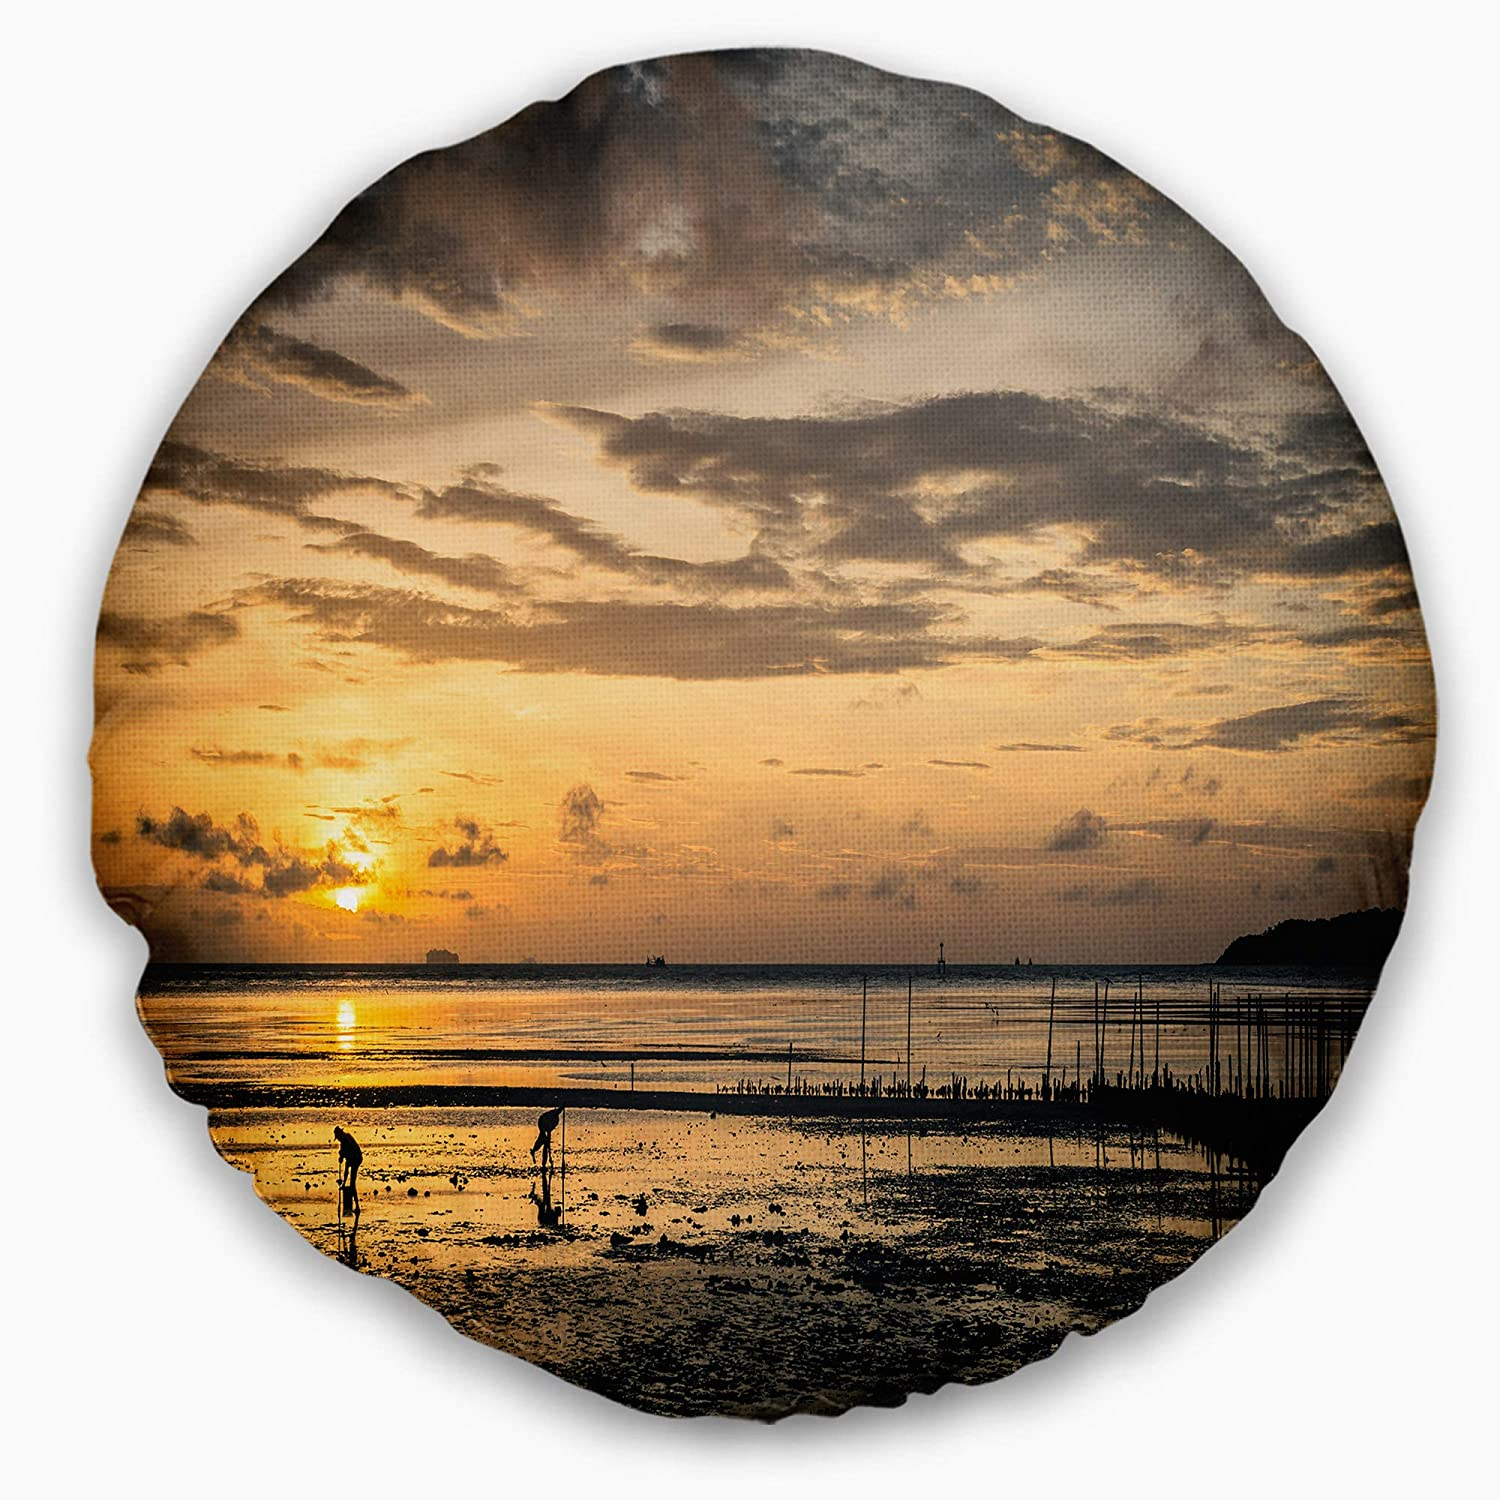 Designart Cu13876 20 20 C Dawn At Seaside During Low Tide Modern Seashore Round Cushion Cover For Living Room Insert Printed On Both Side Sofa Throw Pillow 20 Throw Pillow Covers Home Kitchen